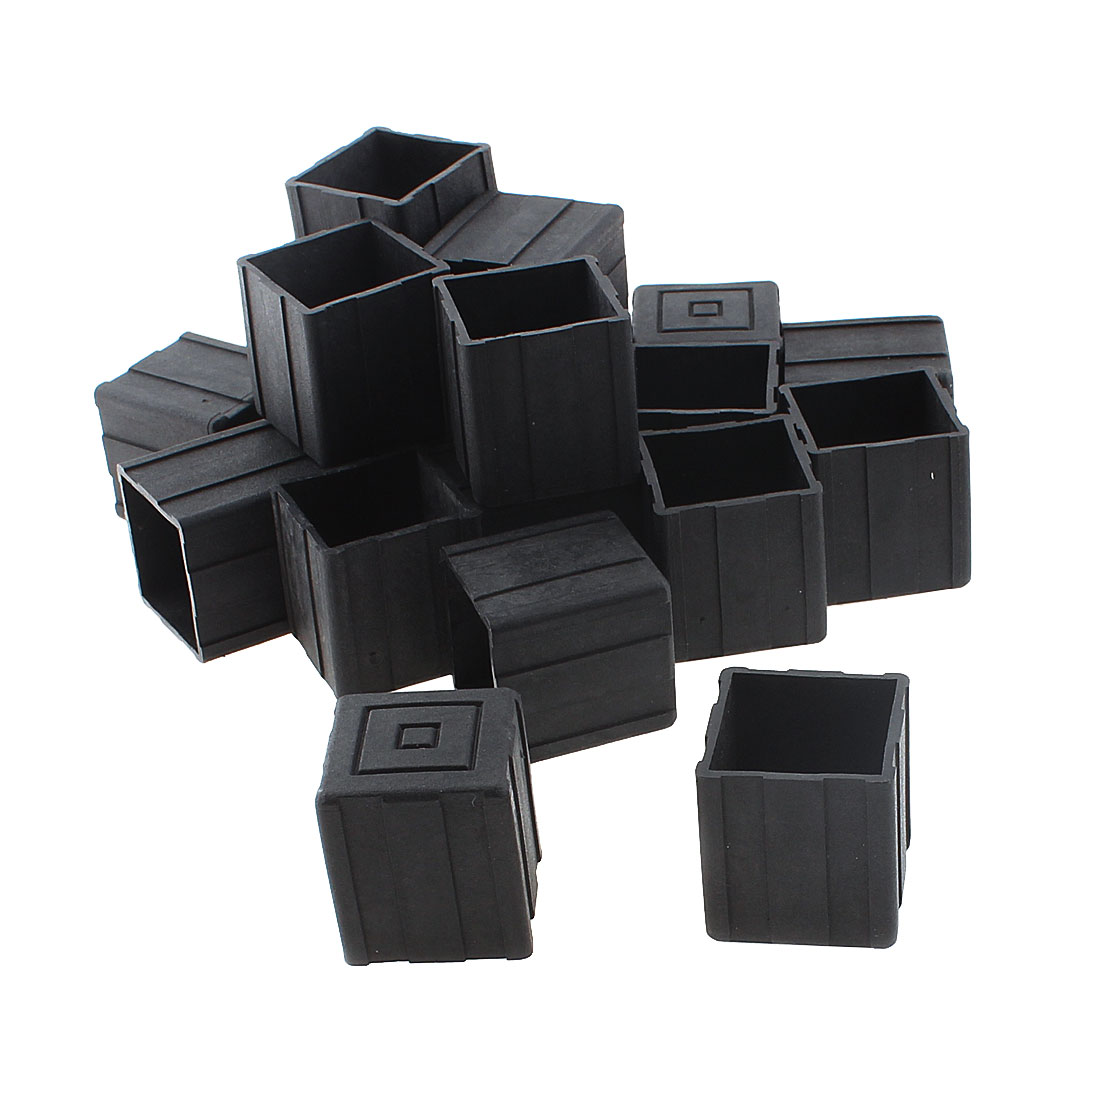 20mm x 20mm Square Shaped Furniture Table Chair Leg Foot Plastic Cover Cap Black 20pcs